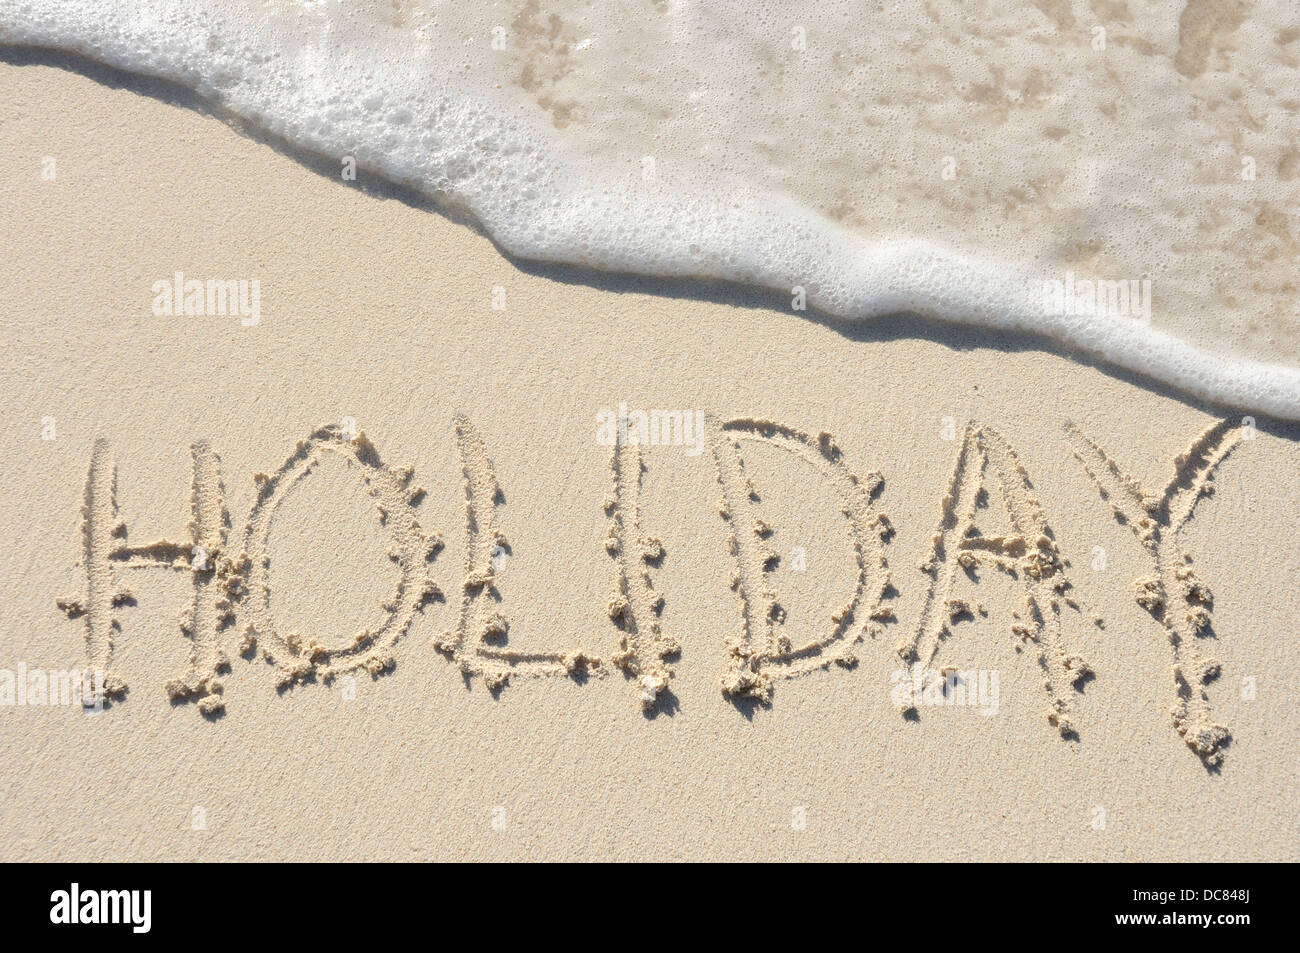 The Word 'Holiday' Written in the Sand on a Beach - Stock Image